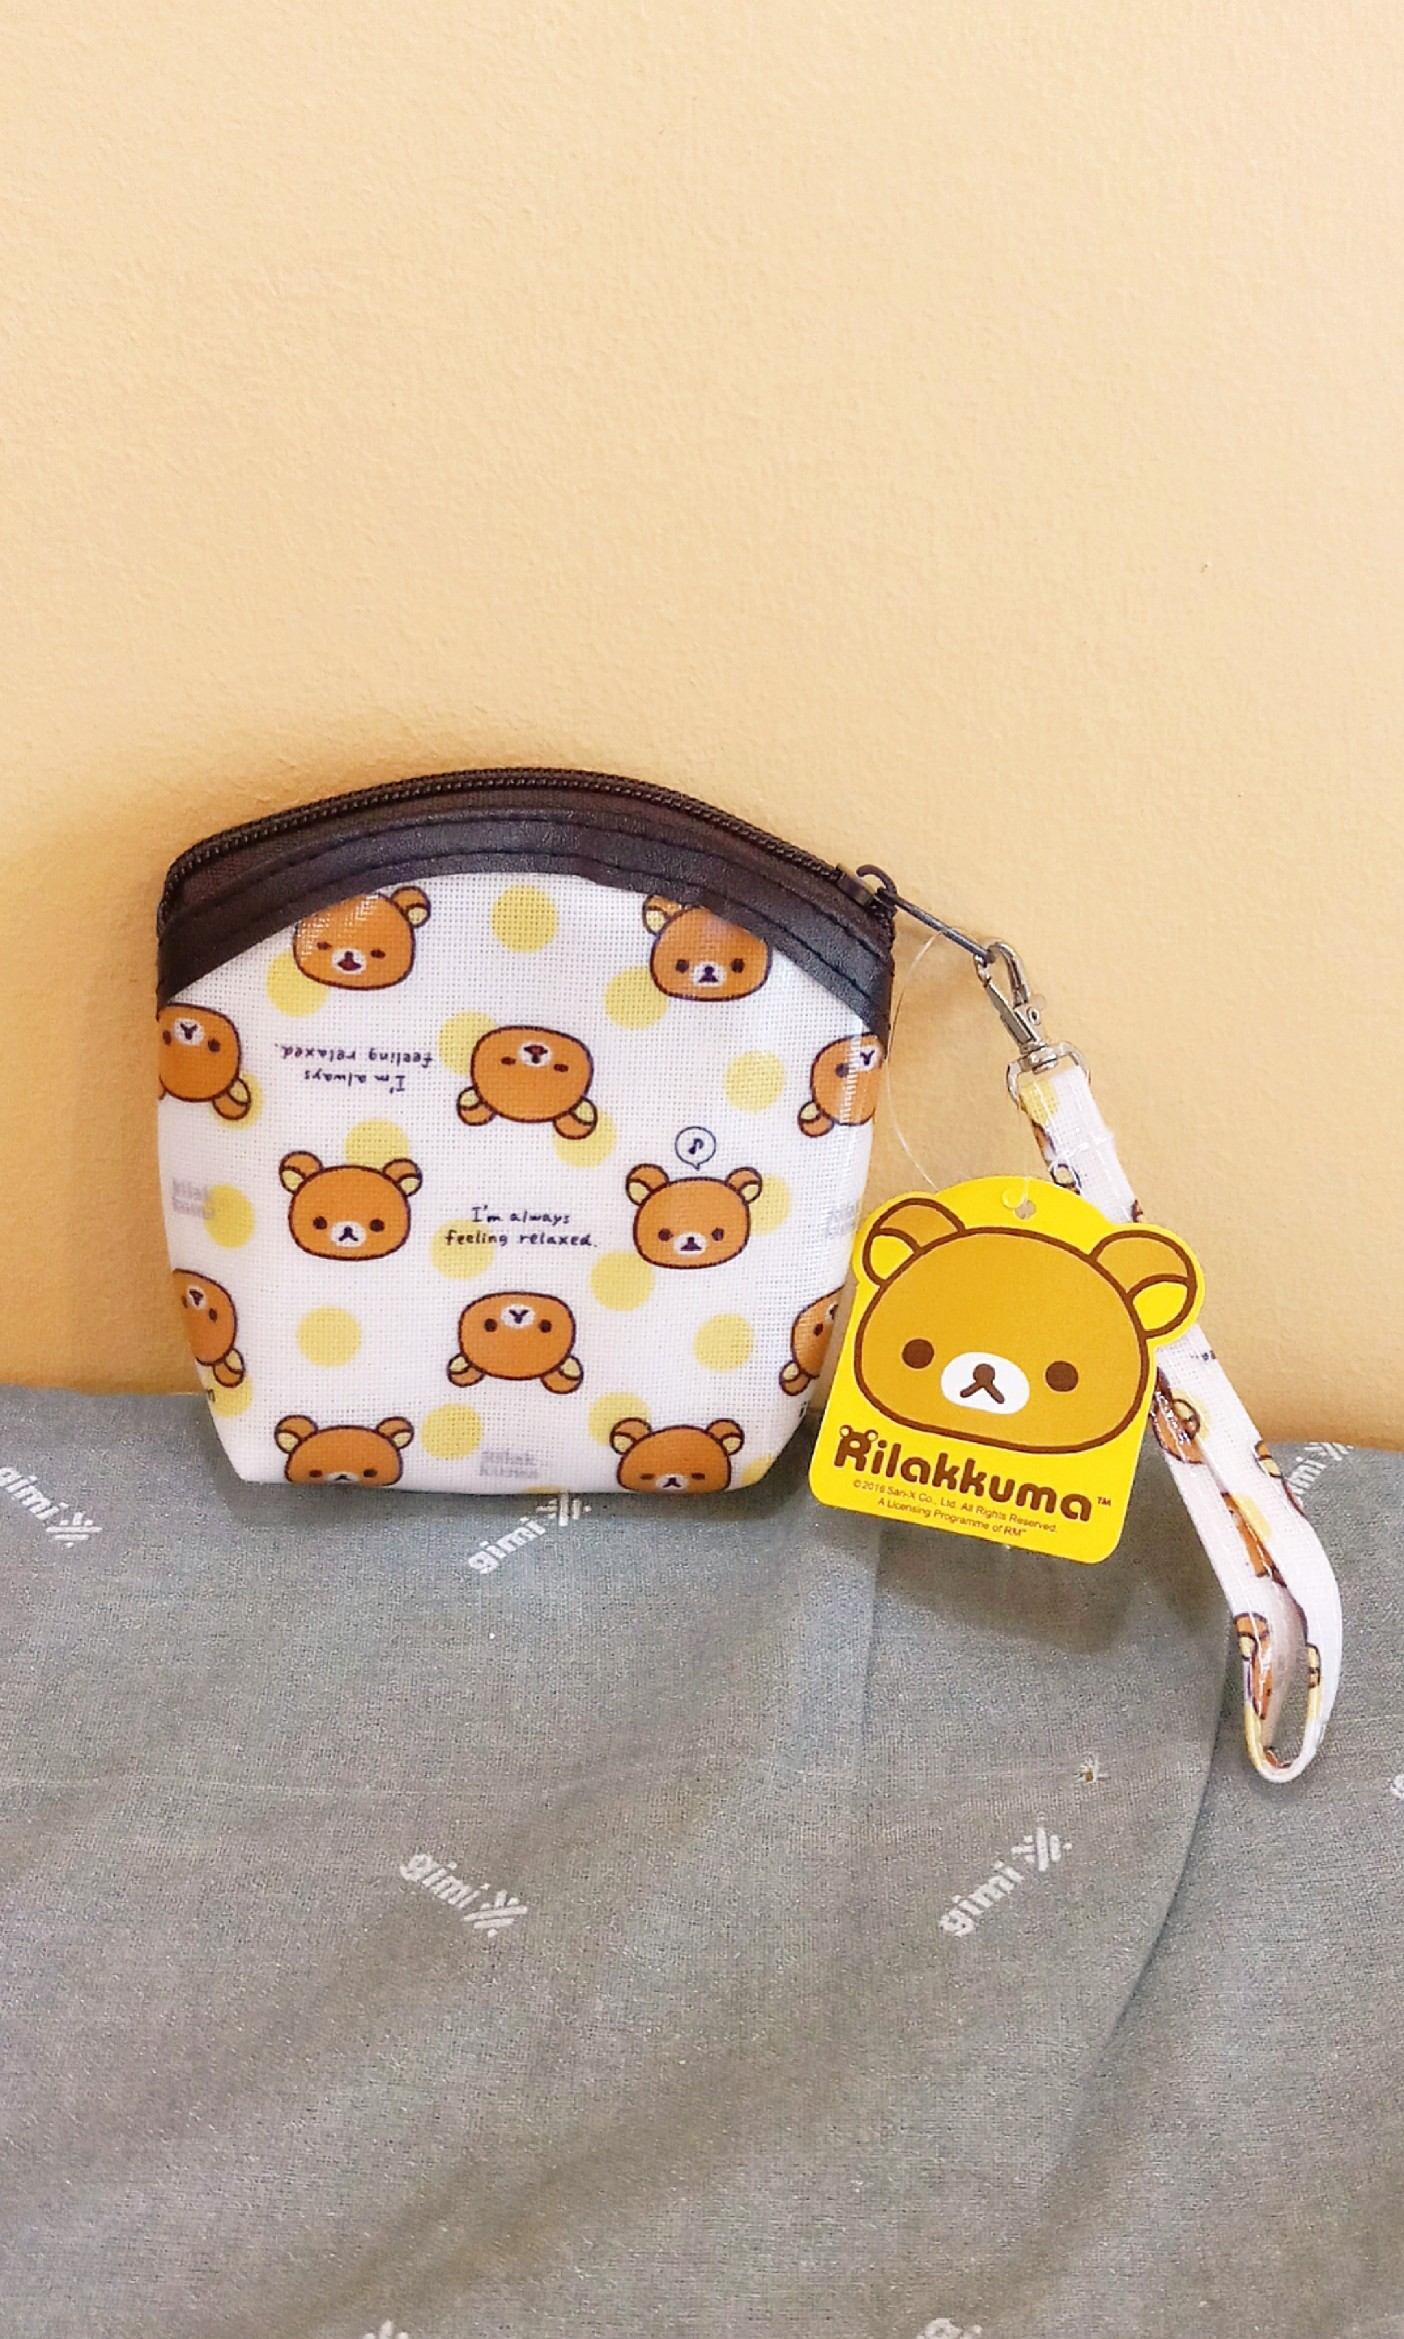 bf172eb44d5d Home · Women s Fashion · Bags   Wallets · Others. photo photo photo photo